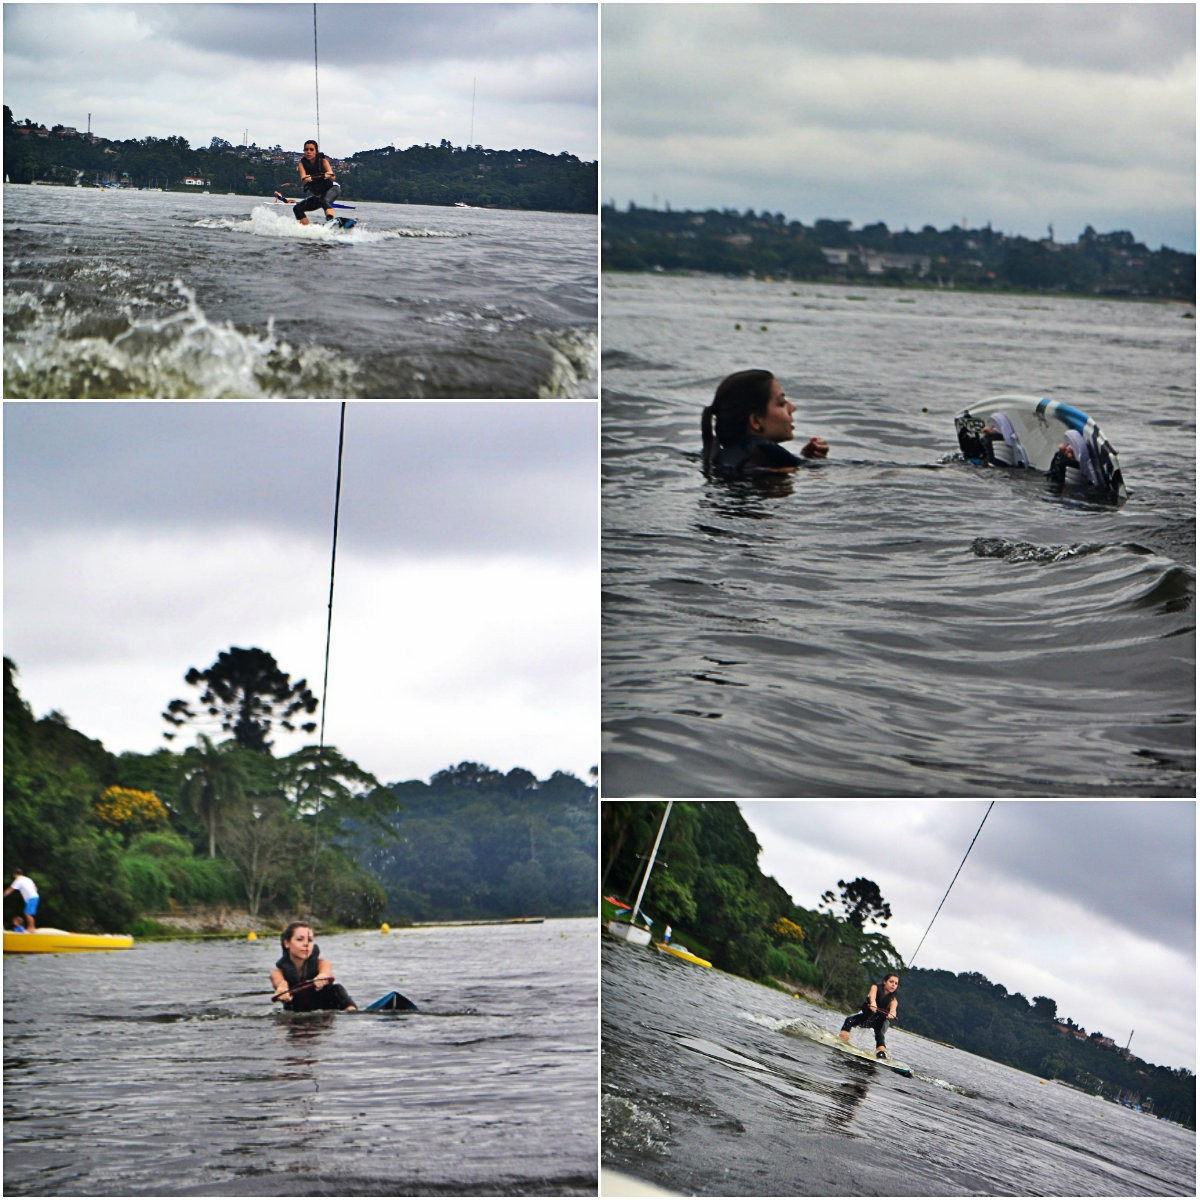 wakeboard represa do guarapiranga